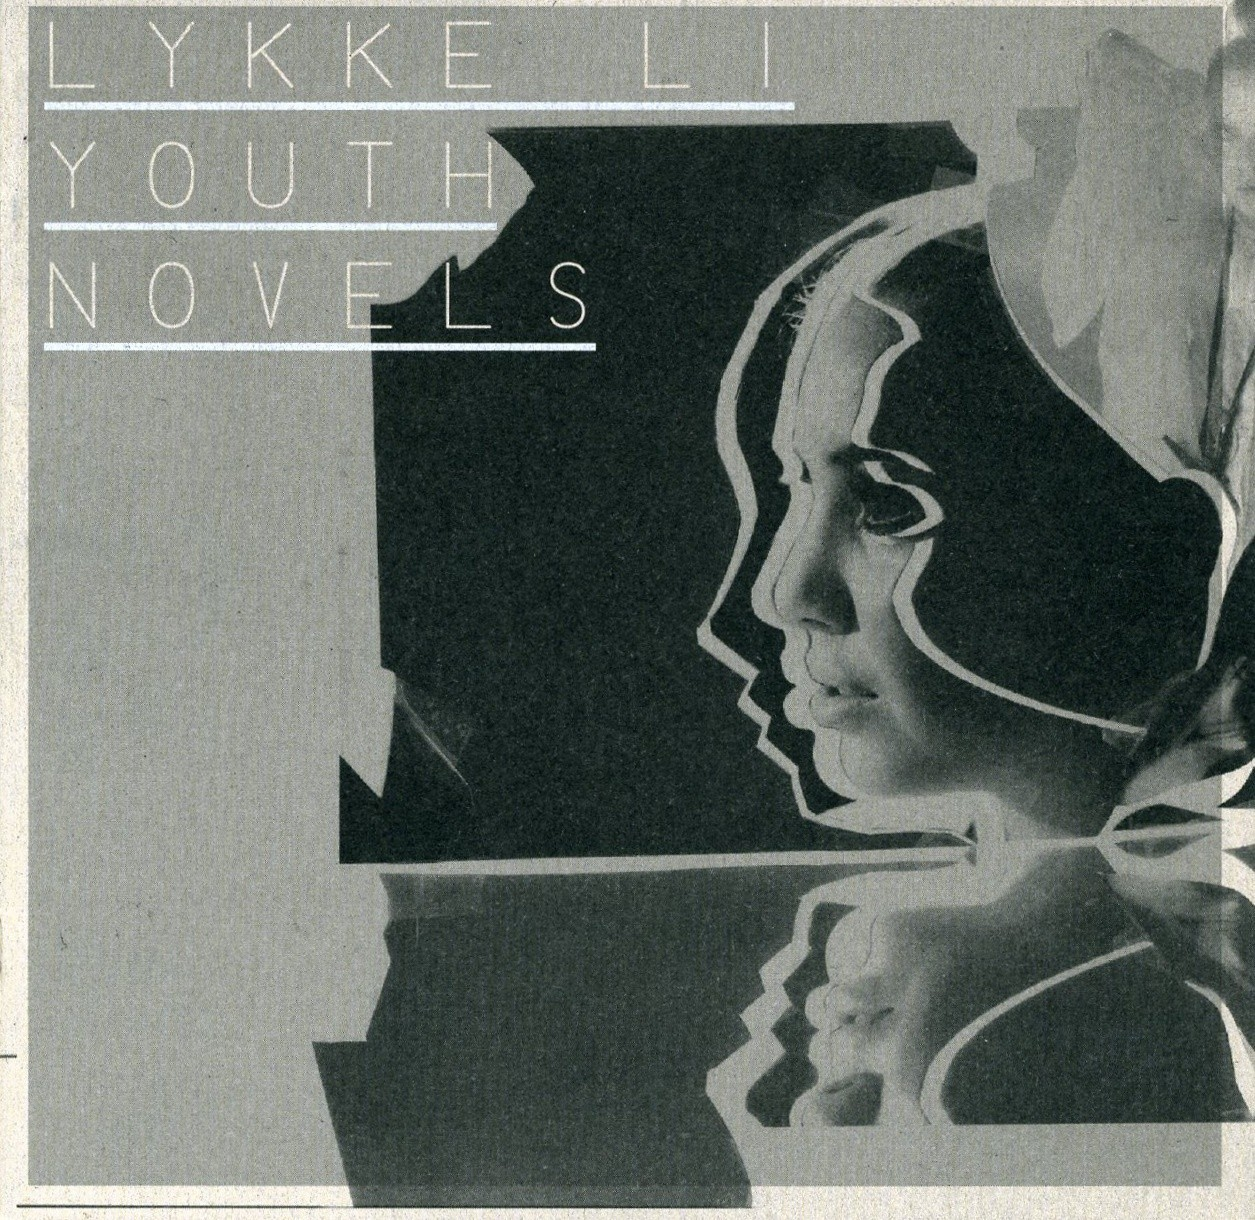 Copertina di Lykke Li Youth Novels